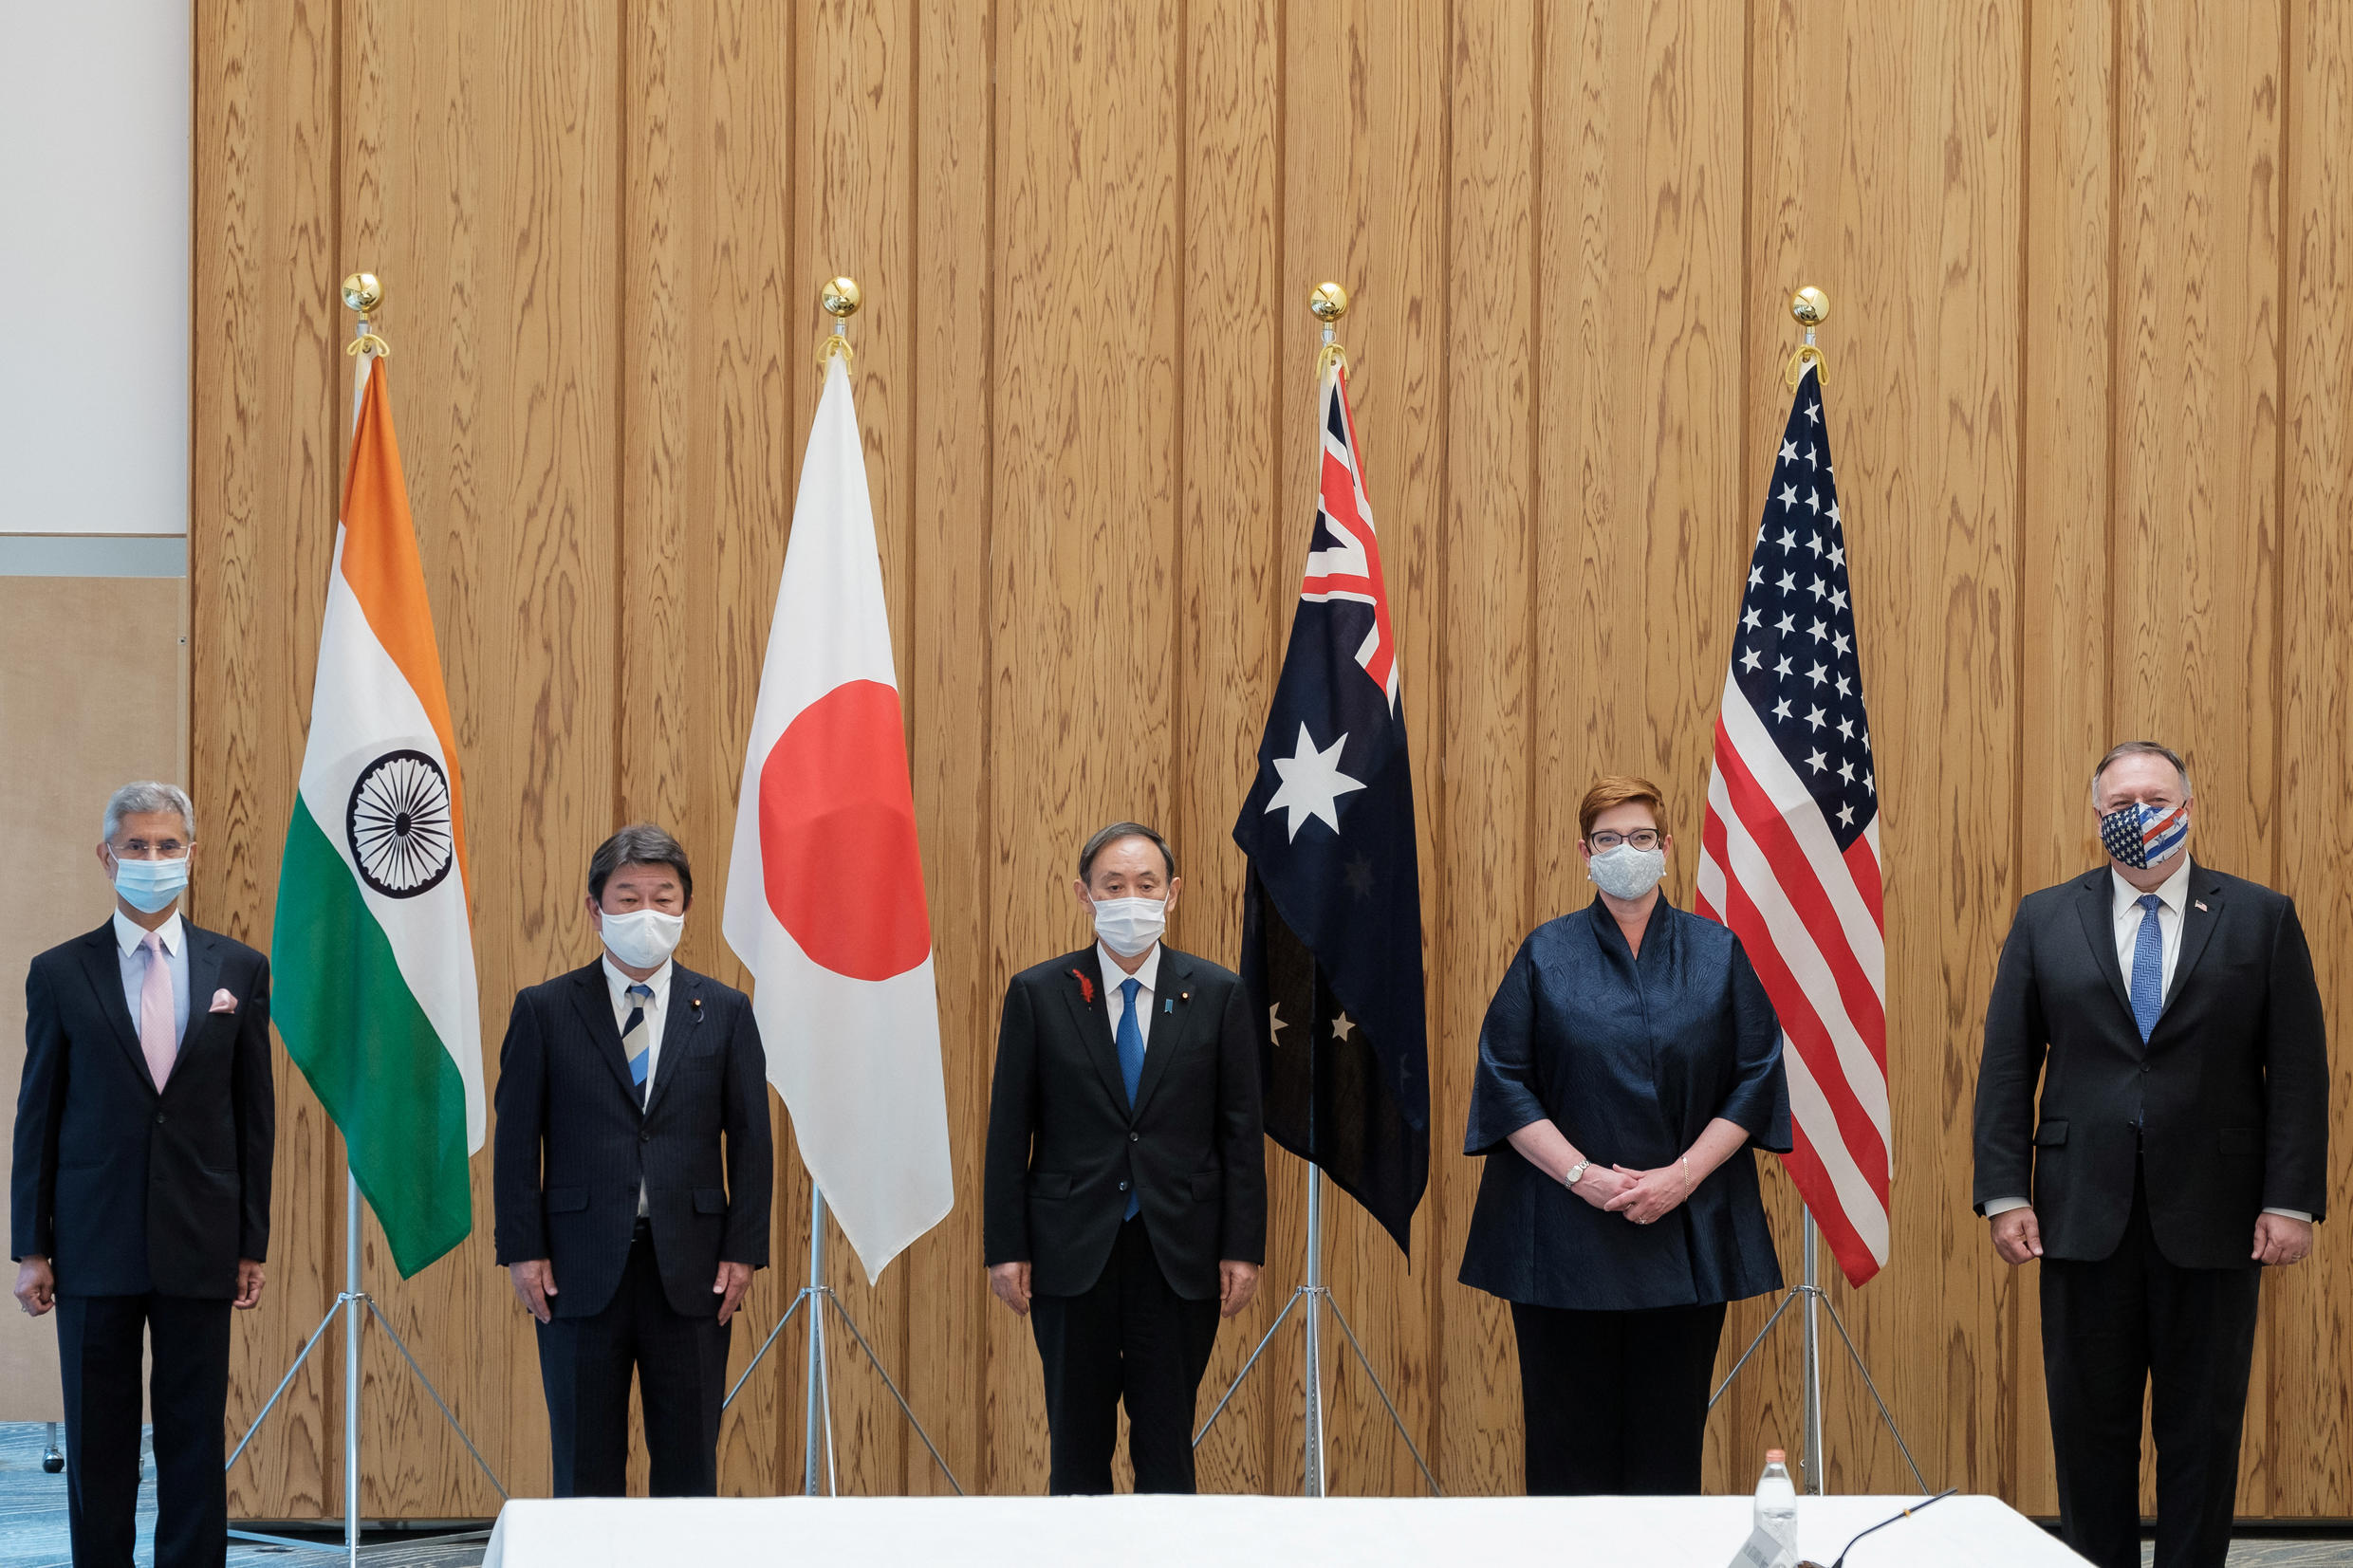 2020-10-06T065724Z_505558224_RC2UCJ9N4YU9_RTRMADP_3_JAPAN-FOREIGNMINISTERS